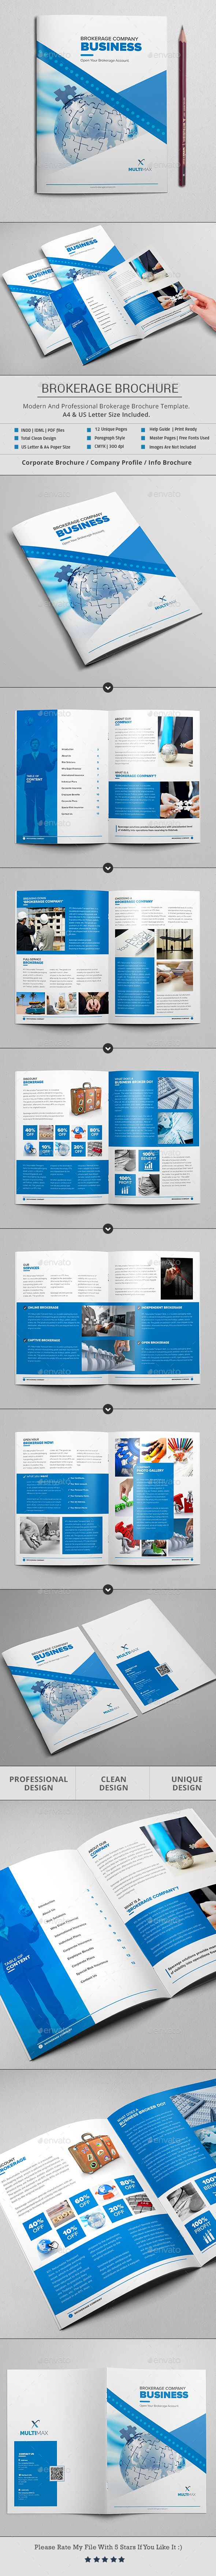 Brokerage Business Brochure Design Template (12 Pages) - Brochures Print Templates InDesign INDD. Download here: https://graphicriver.net/item/brokerage-business-brochure-12-pages/18893109?ref=yinkira